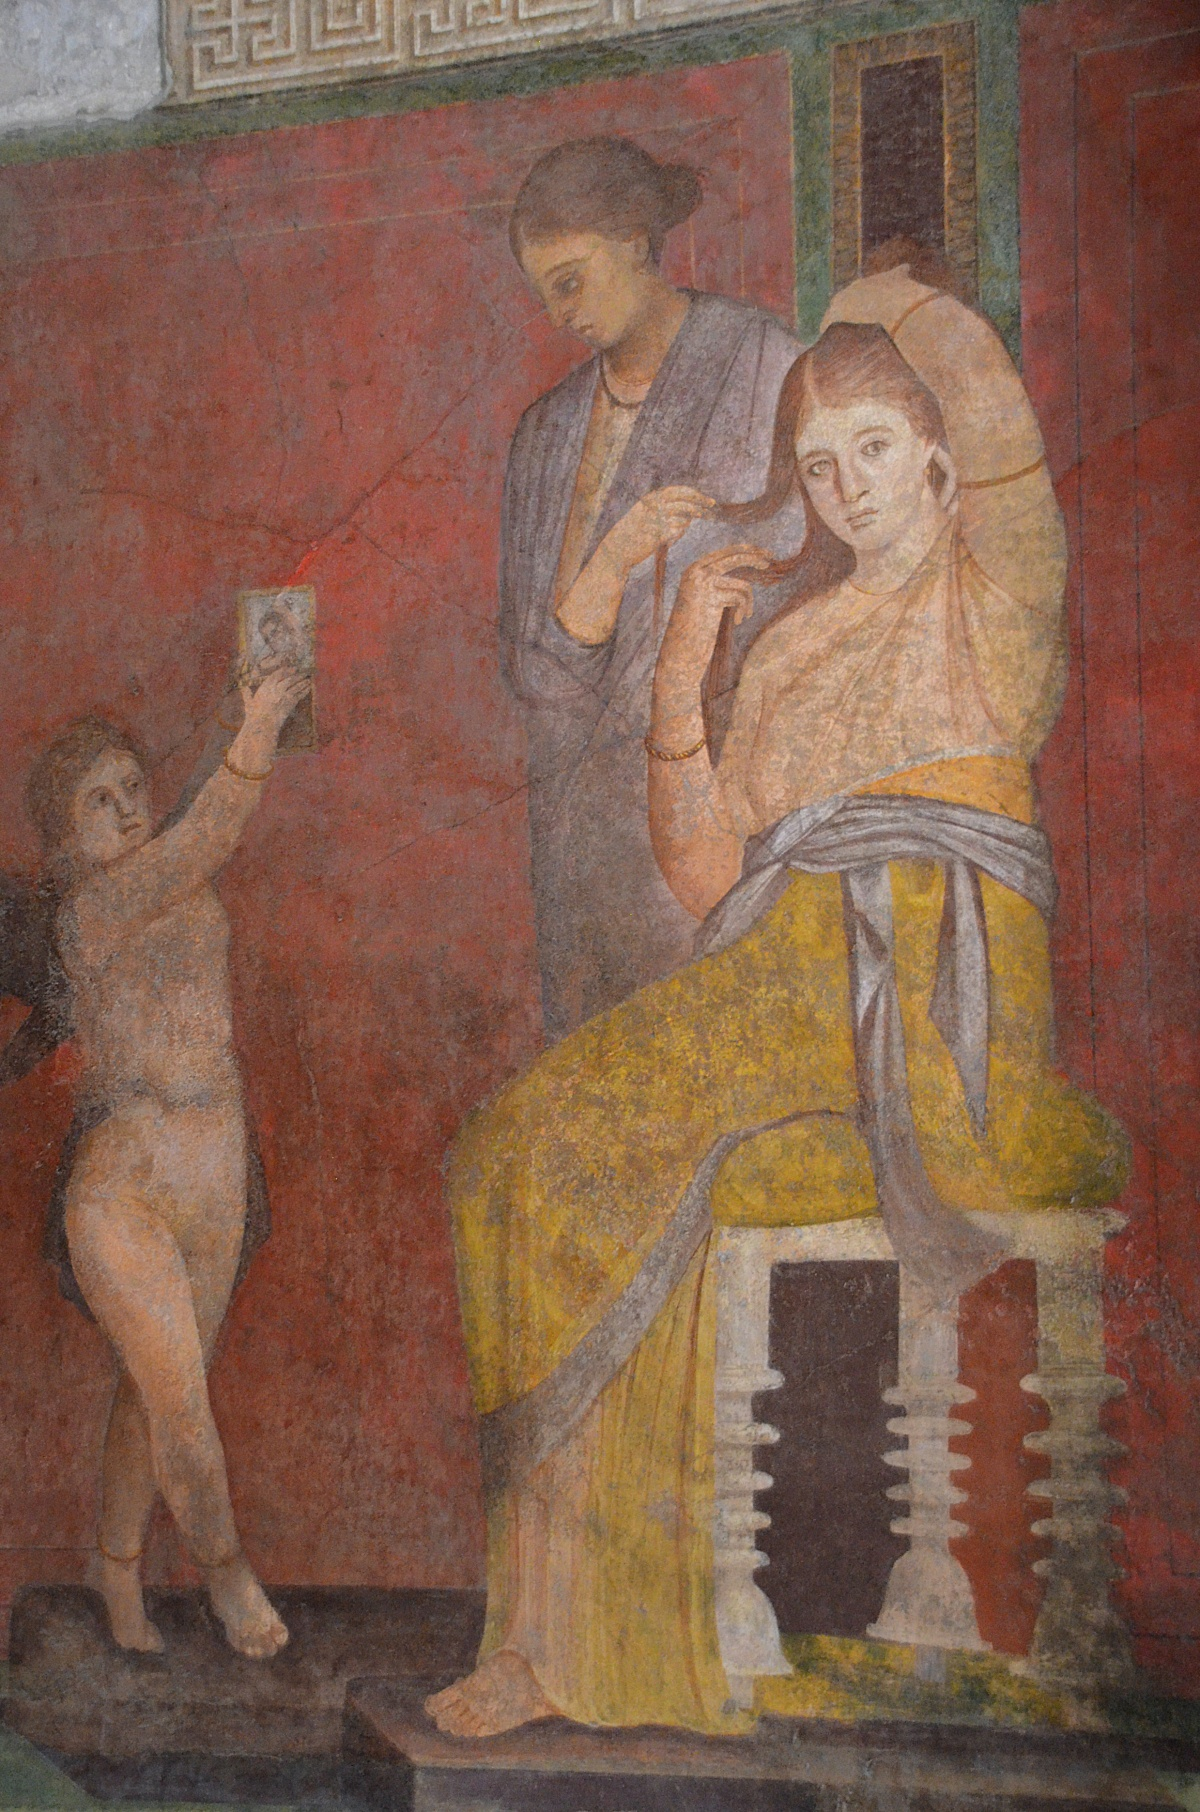 woman having her hair done by servant at Pompeii fresco